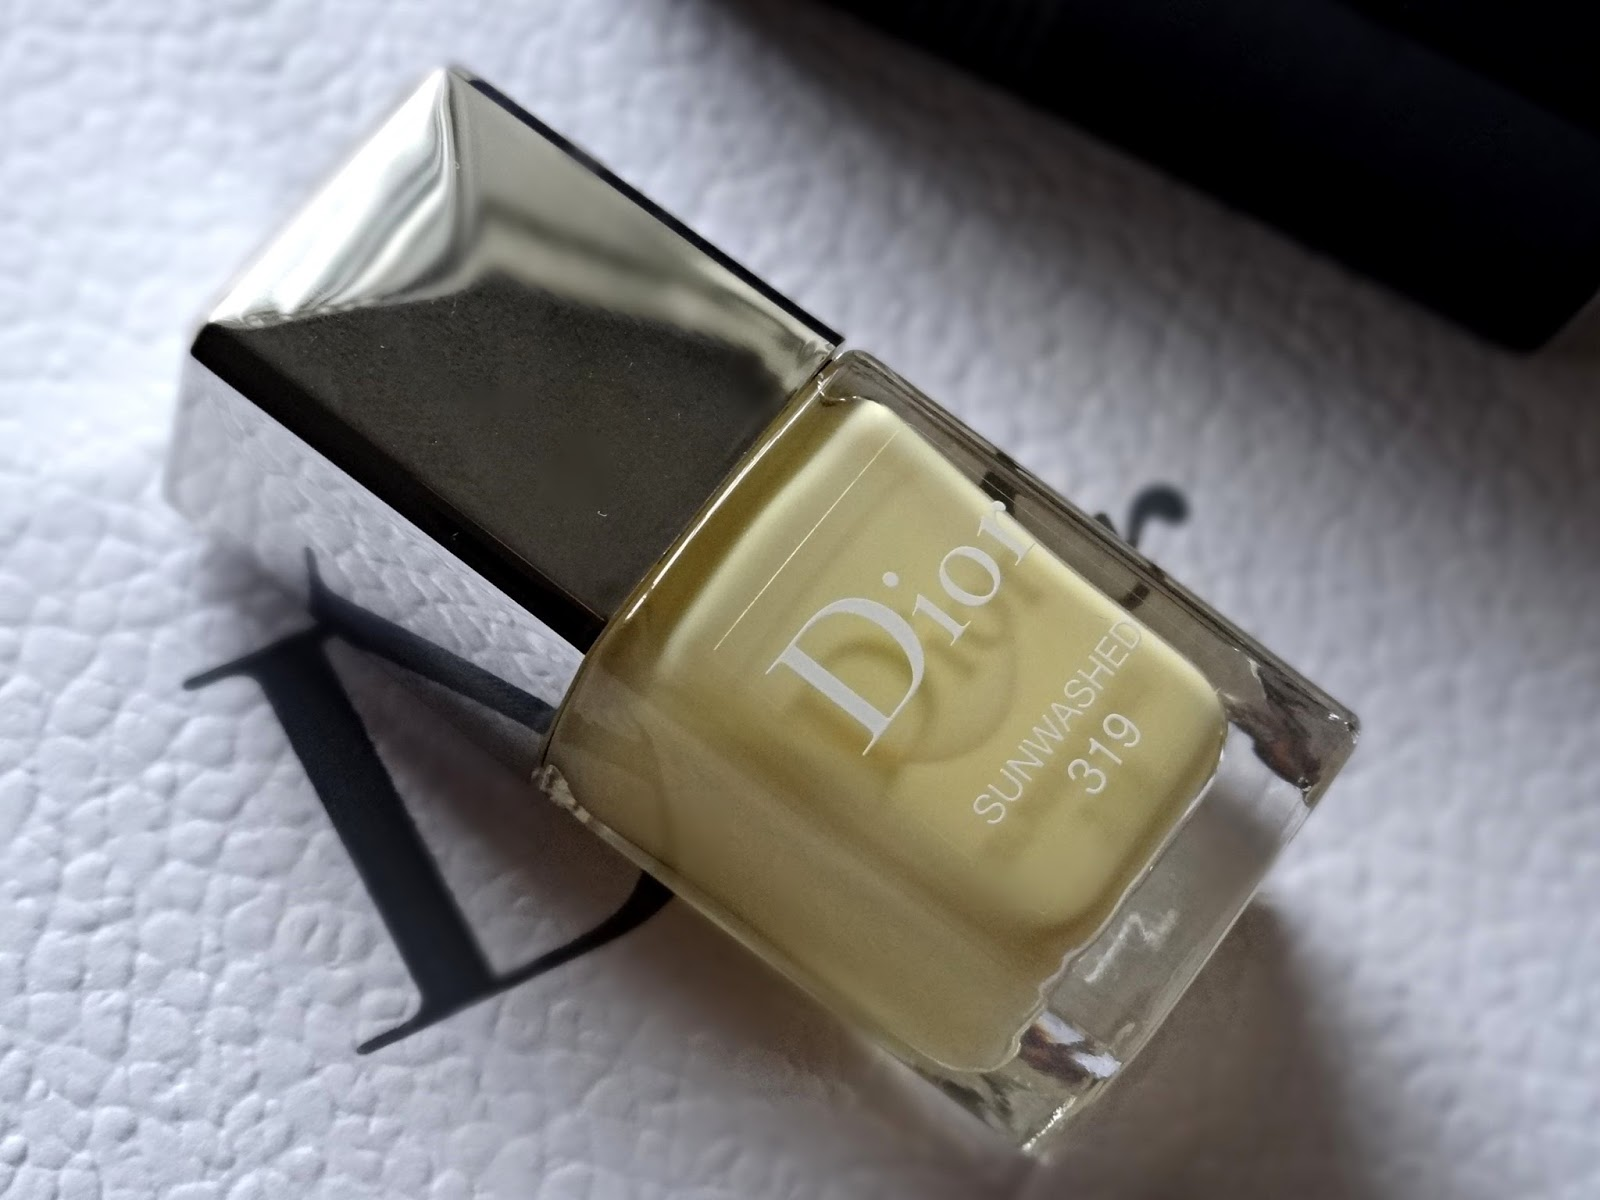 Dior Vernis Sunwashed 319 | Dior Tie Dye Summer 2015 Makeup Collection